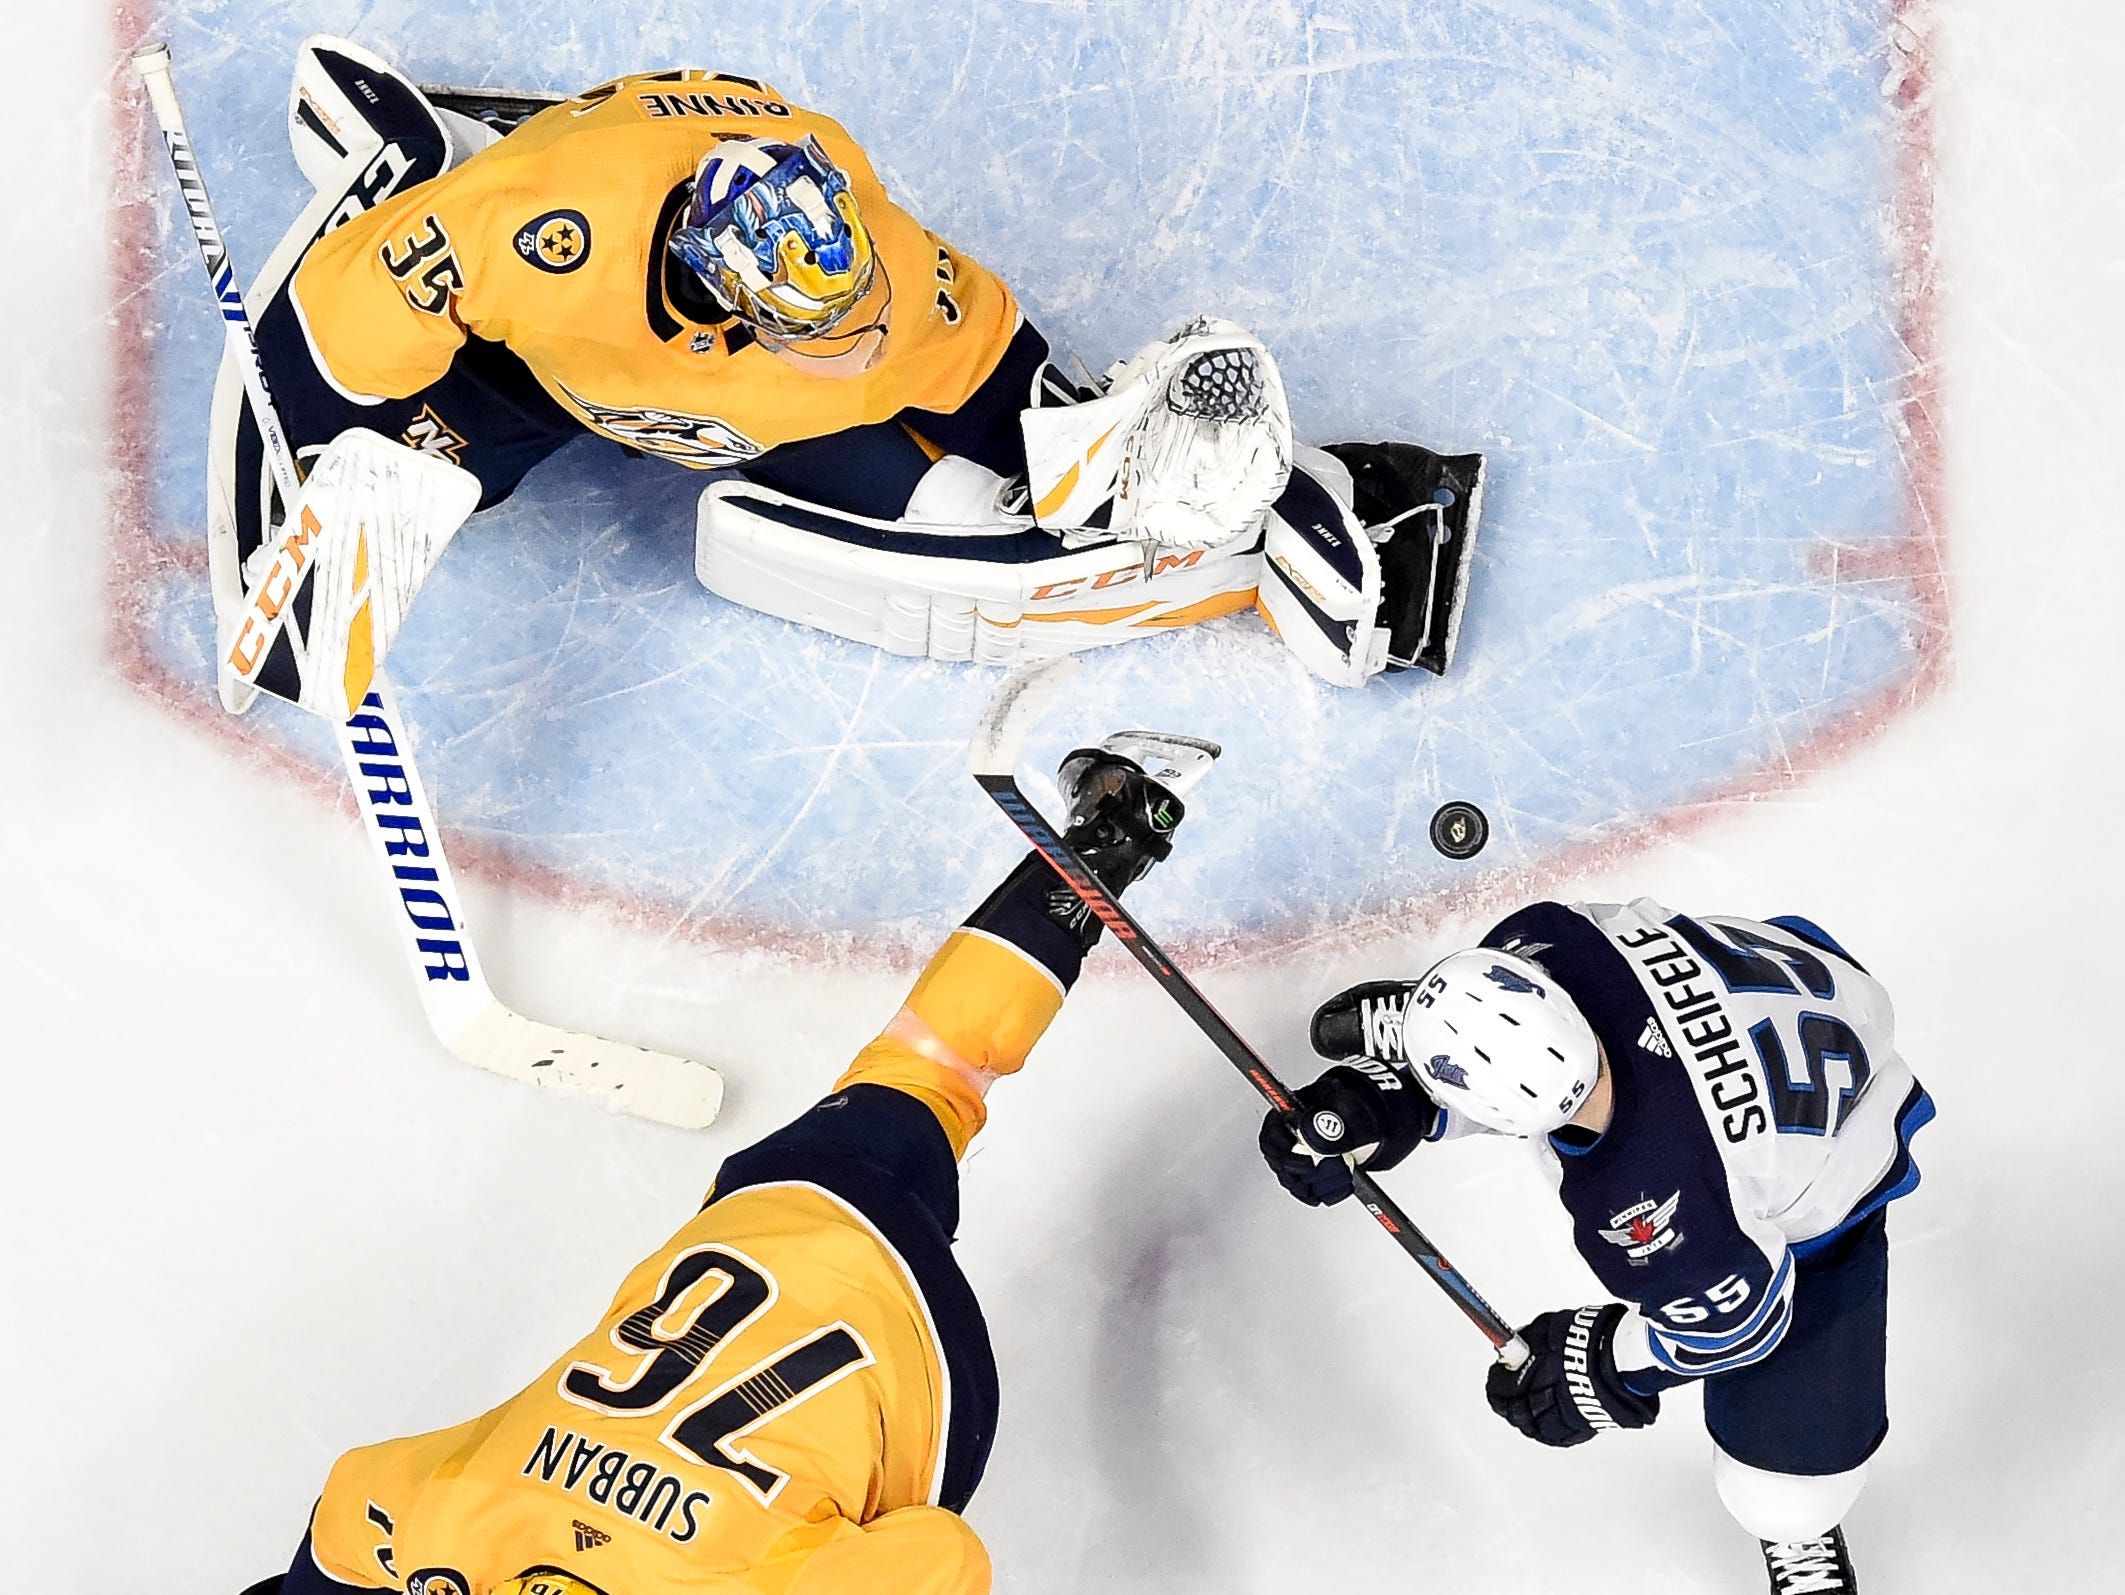 Nashville Predators goaltender Pekka Rinne (35) and defenseman P.K. Subban (76) defend against Winnipeg Jets center Mark Scheifele (55) during the first period at Bridgestone Arena in Nashville, Tenn., Thursday, Jan. 17, 2019.